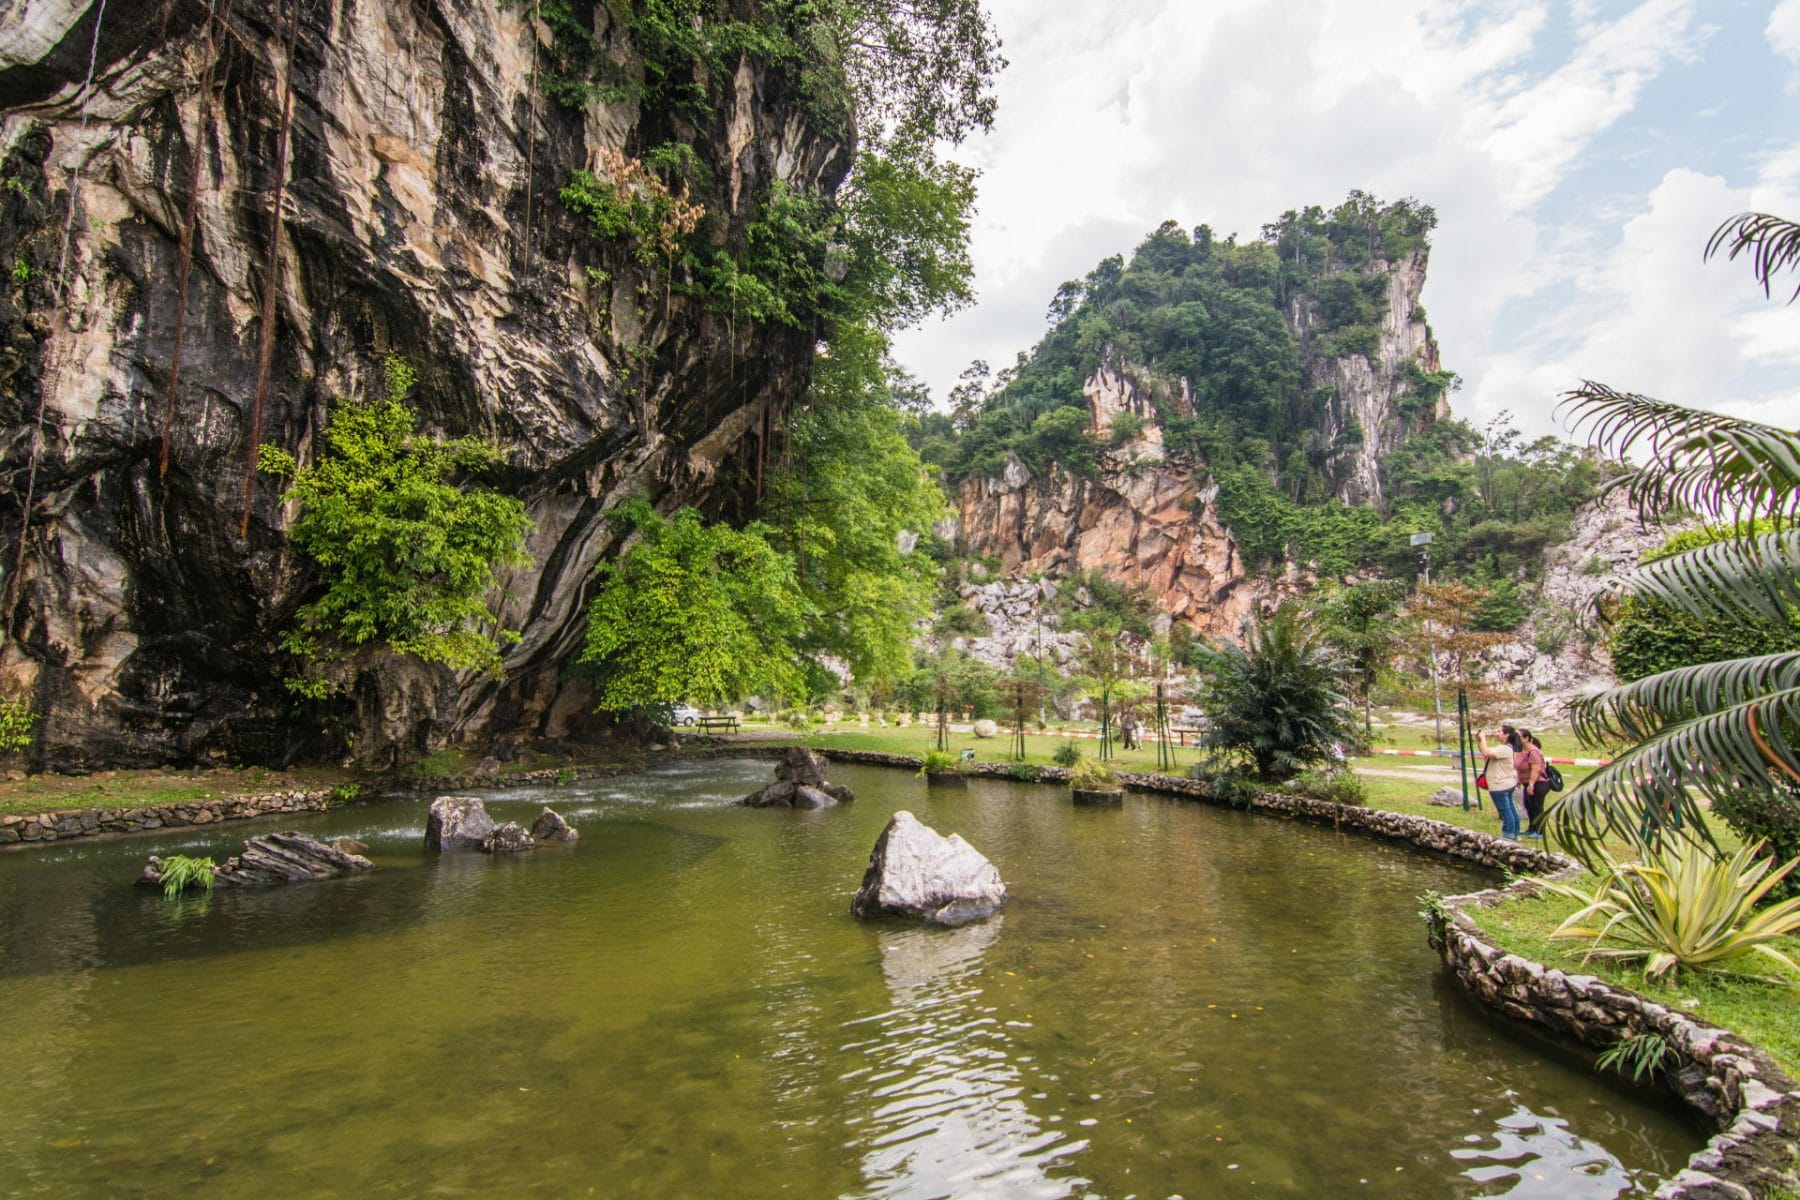 gunung lang recreational park - ipoh - malaisie